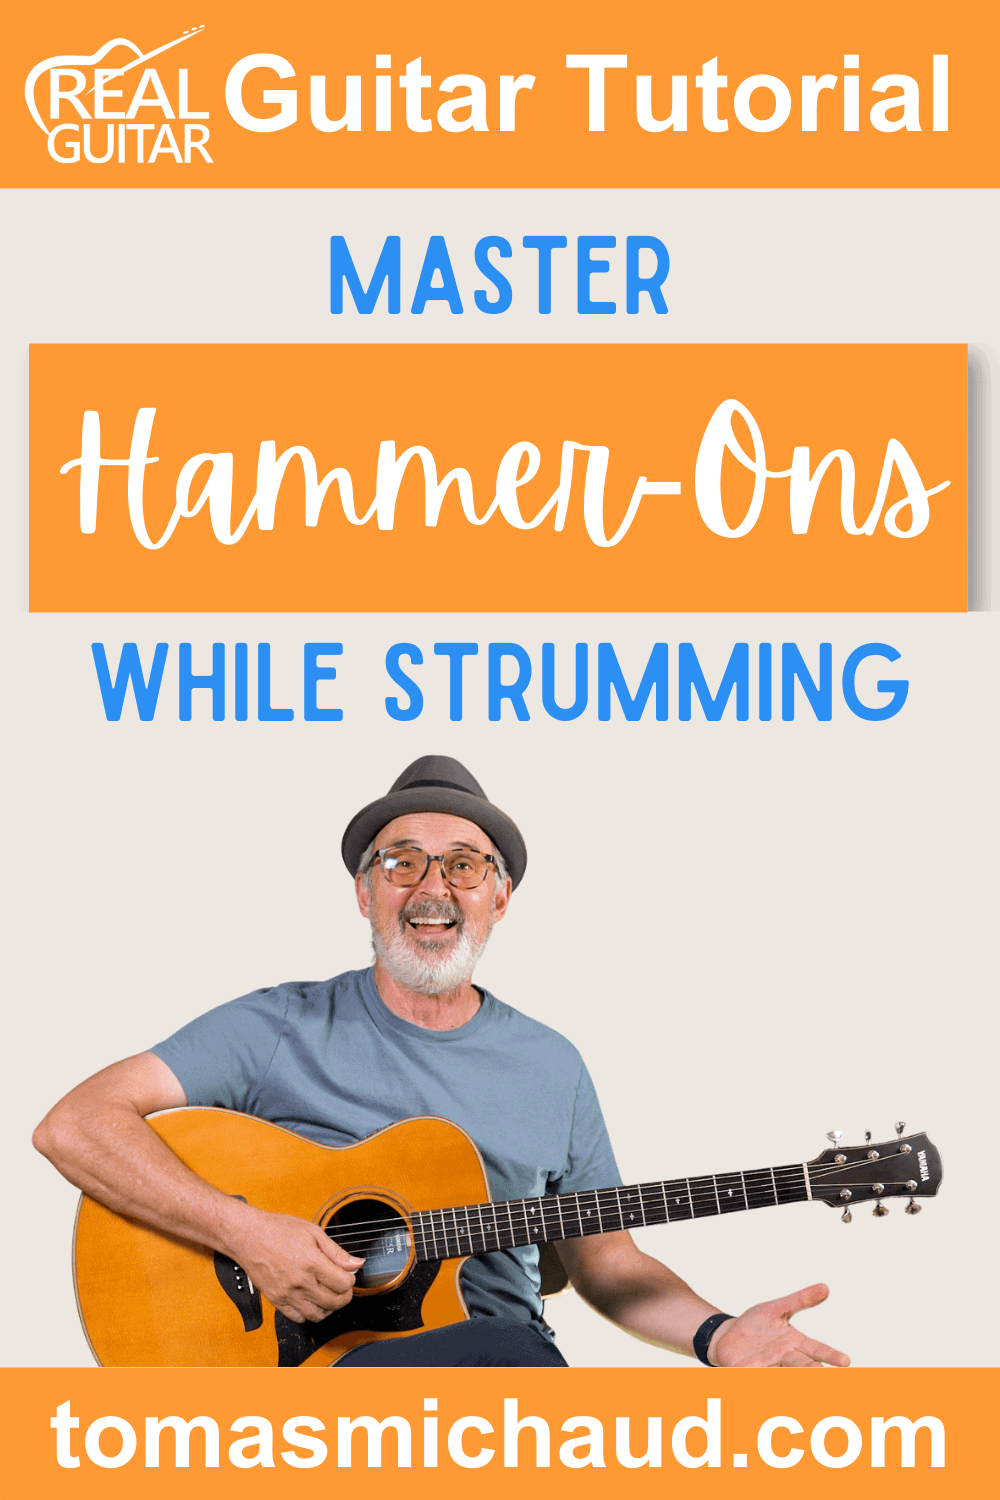 Master Hammer-Ons While Strumming